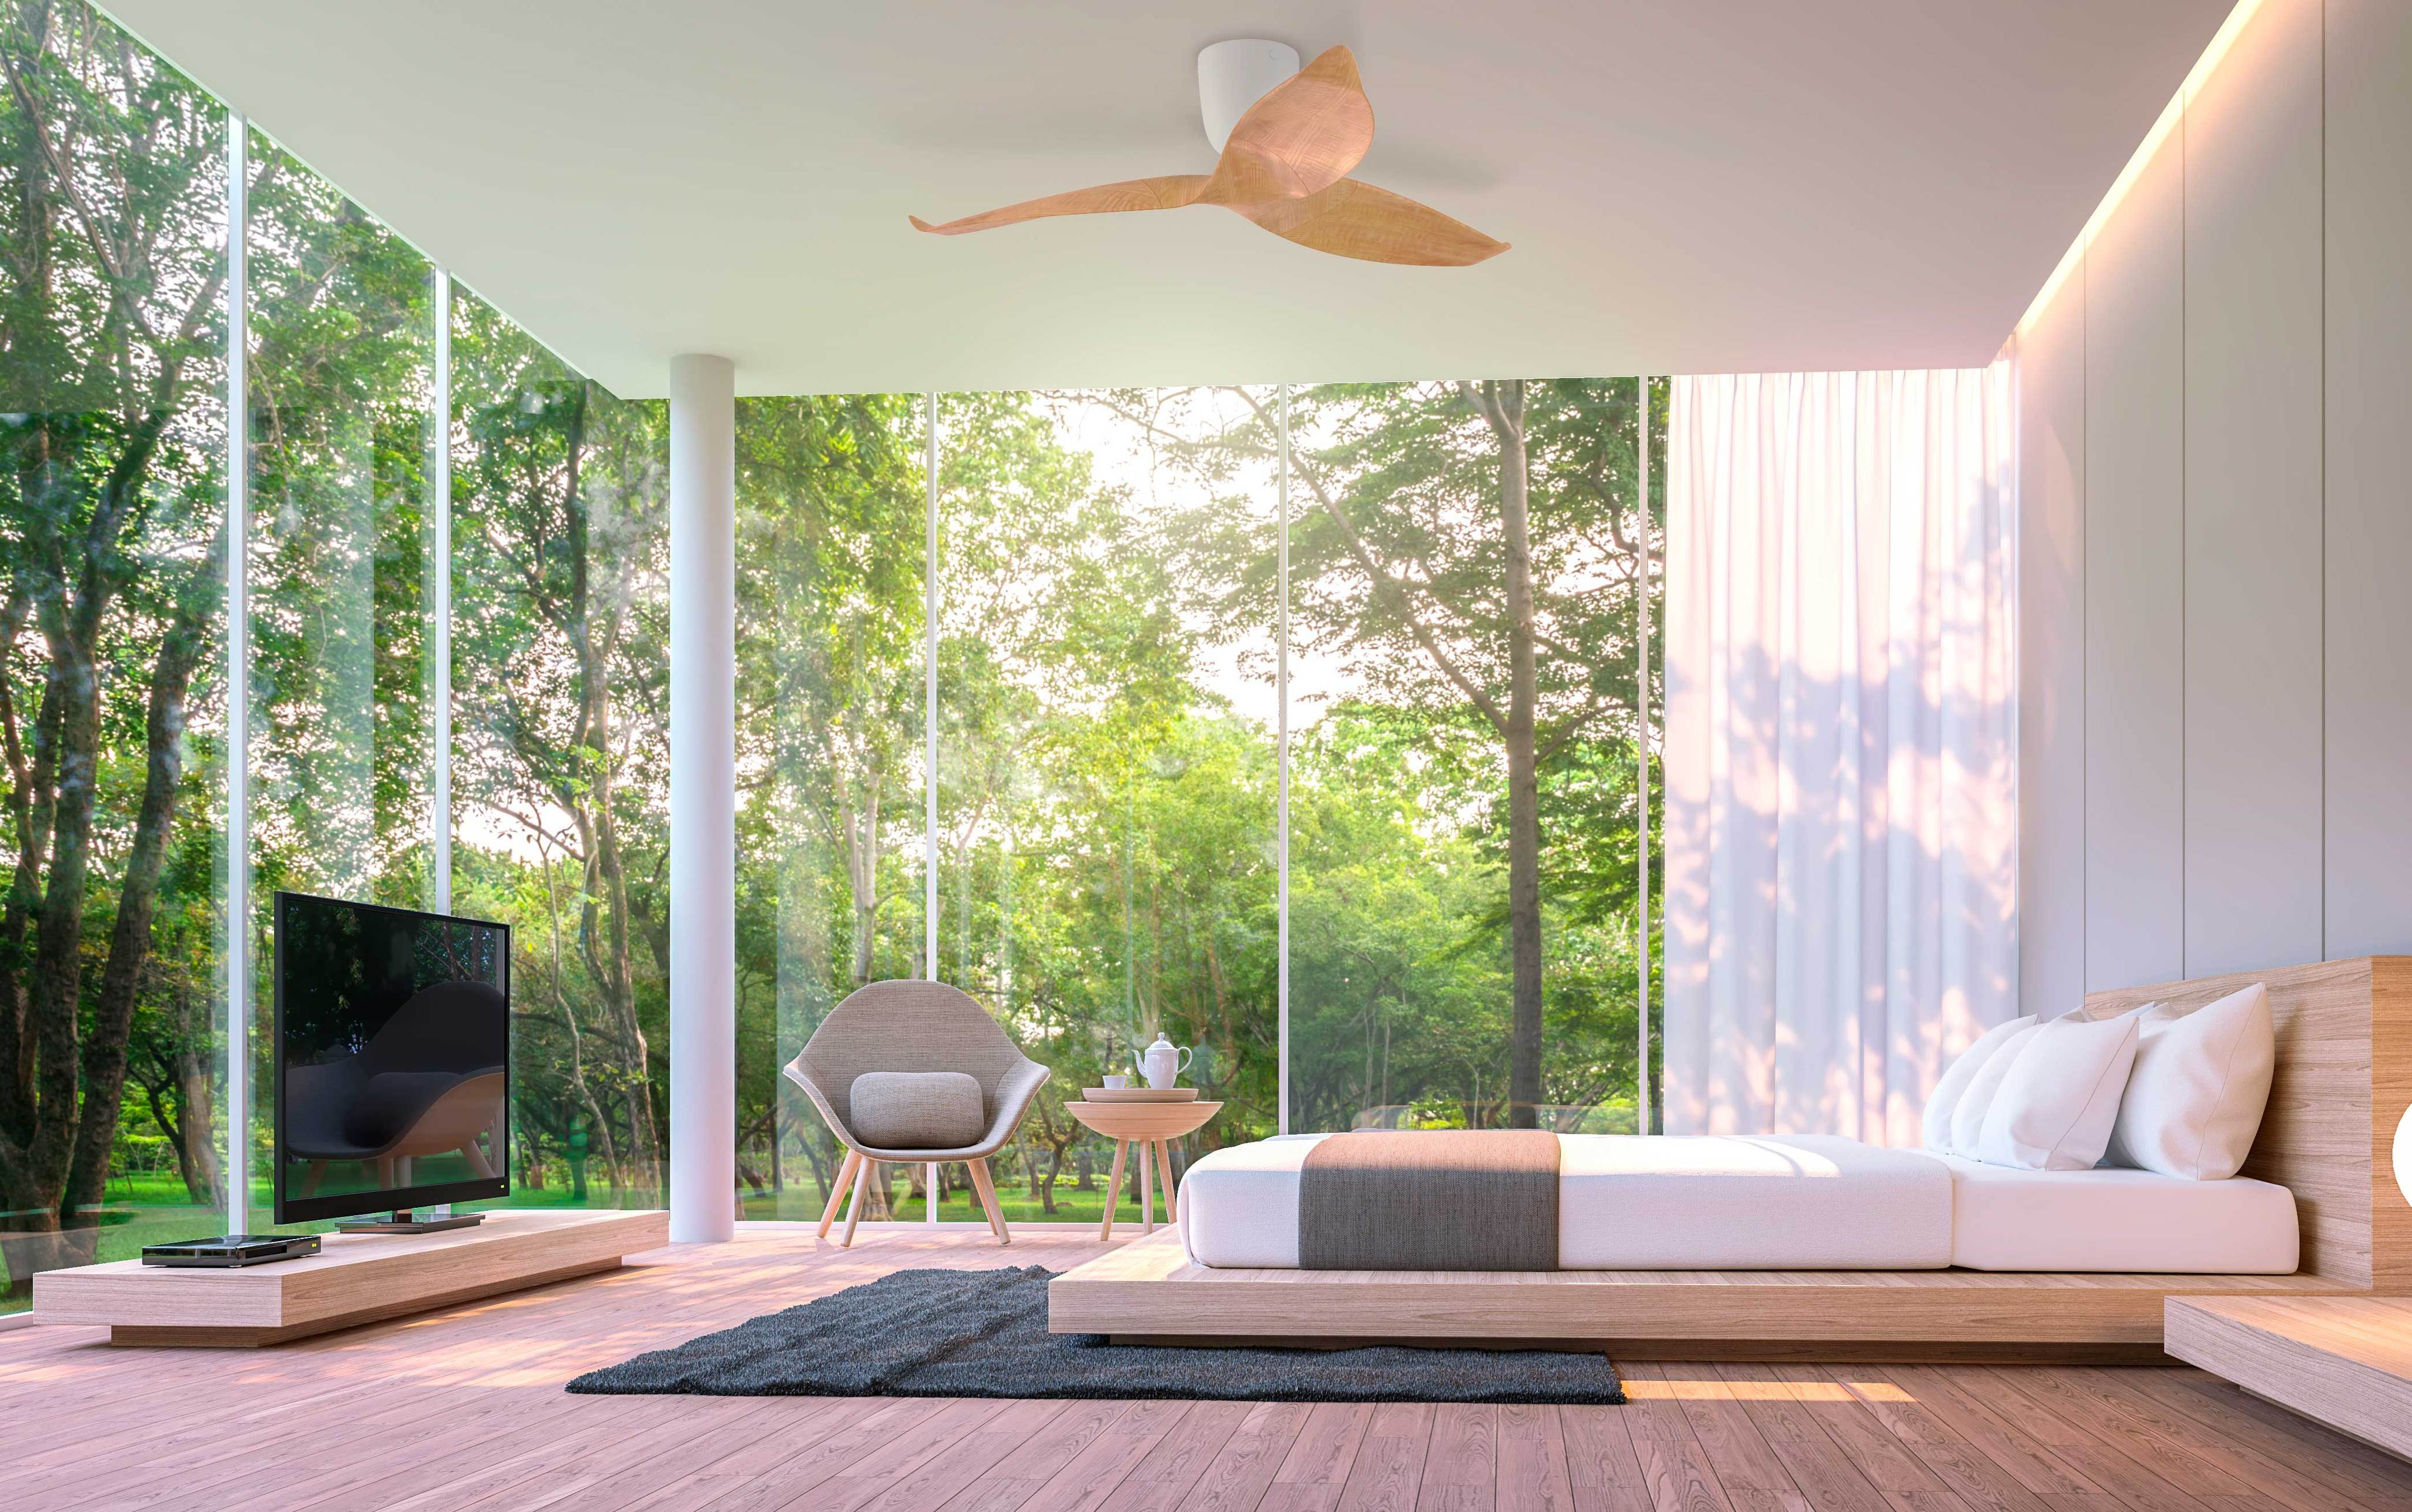 Aeratron Ceiling Fans World S Most Eco Efficient Fans Aeratron Aeratron Global